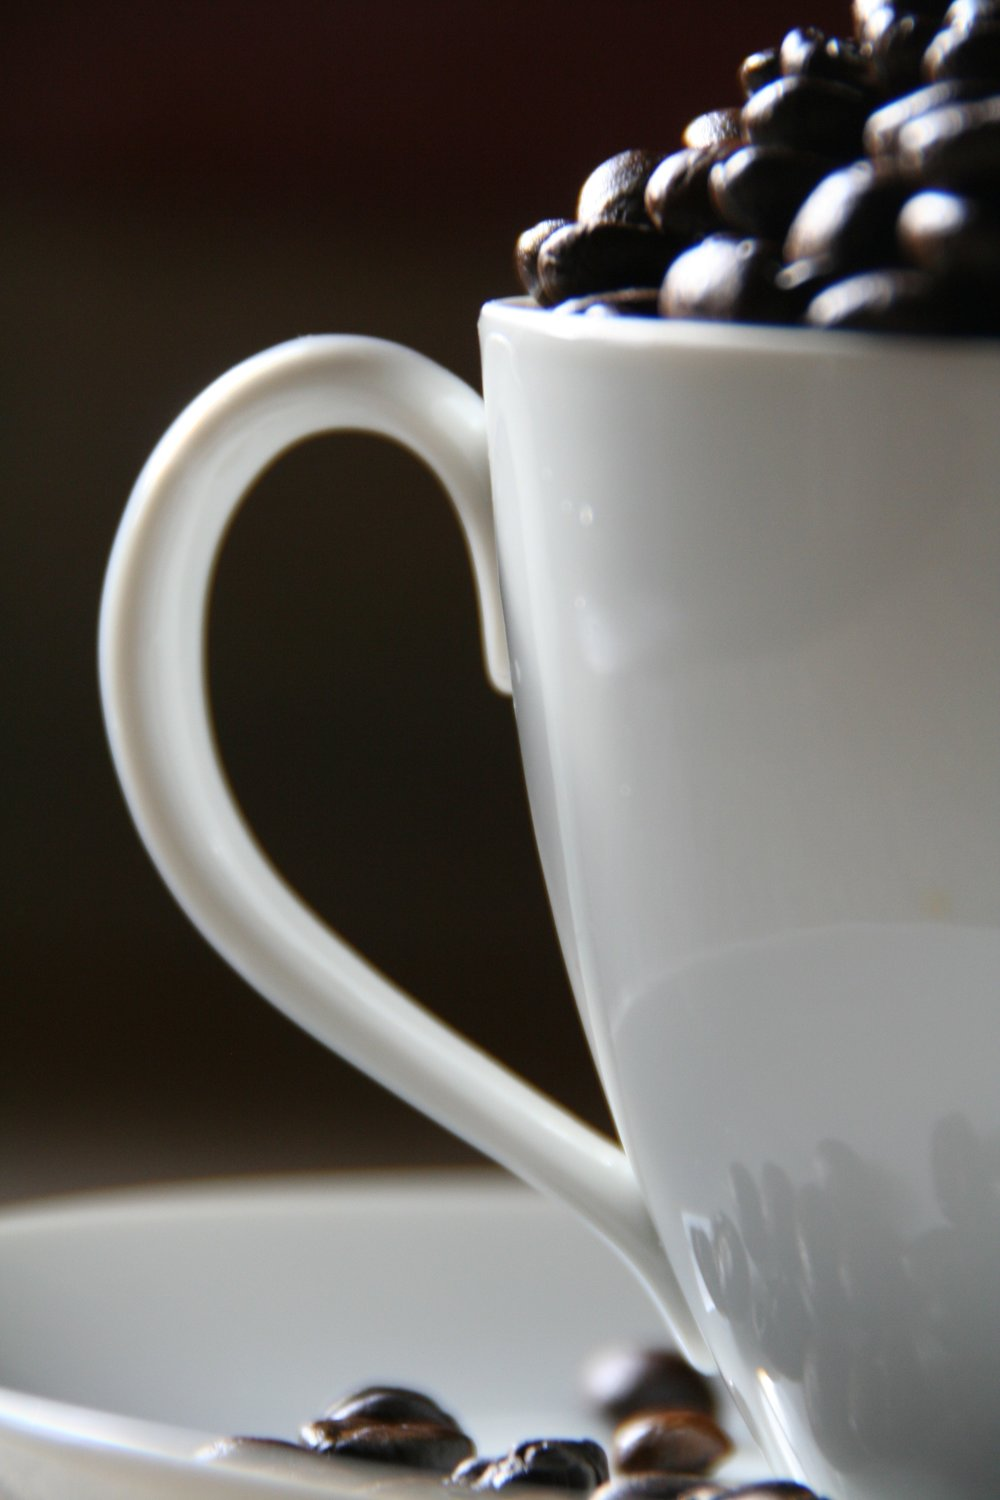 Coffee - Coffee is brewedlike ideas or anger,strained through:thought, feeling, taste.The aroma is antidote, especially for you, the heat-seeking communicators of heartsong, heartache, aligned with the element of fire, sniffing the scorched air, open-hearted,seeing red,bitter your key.